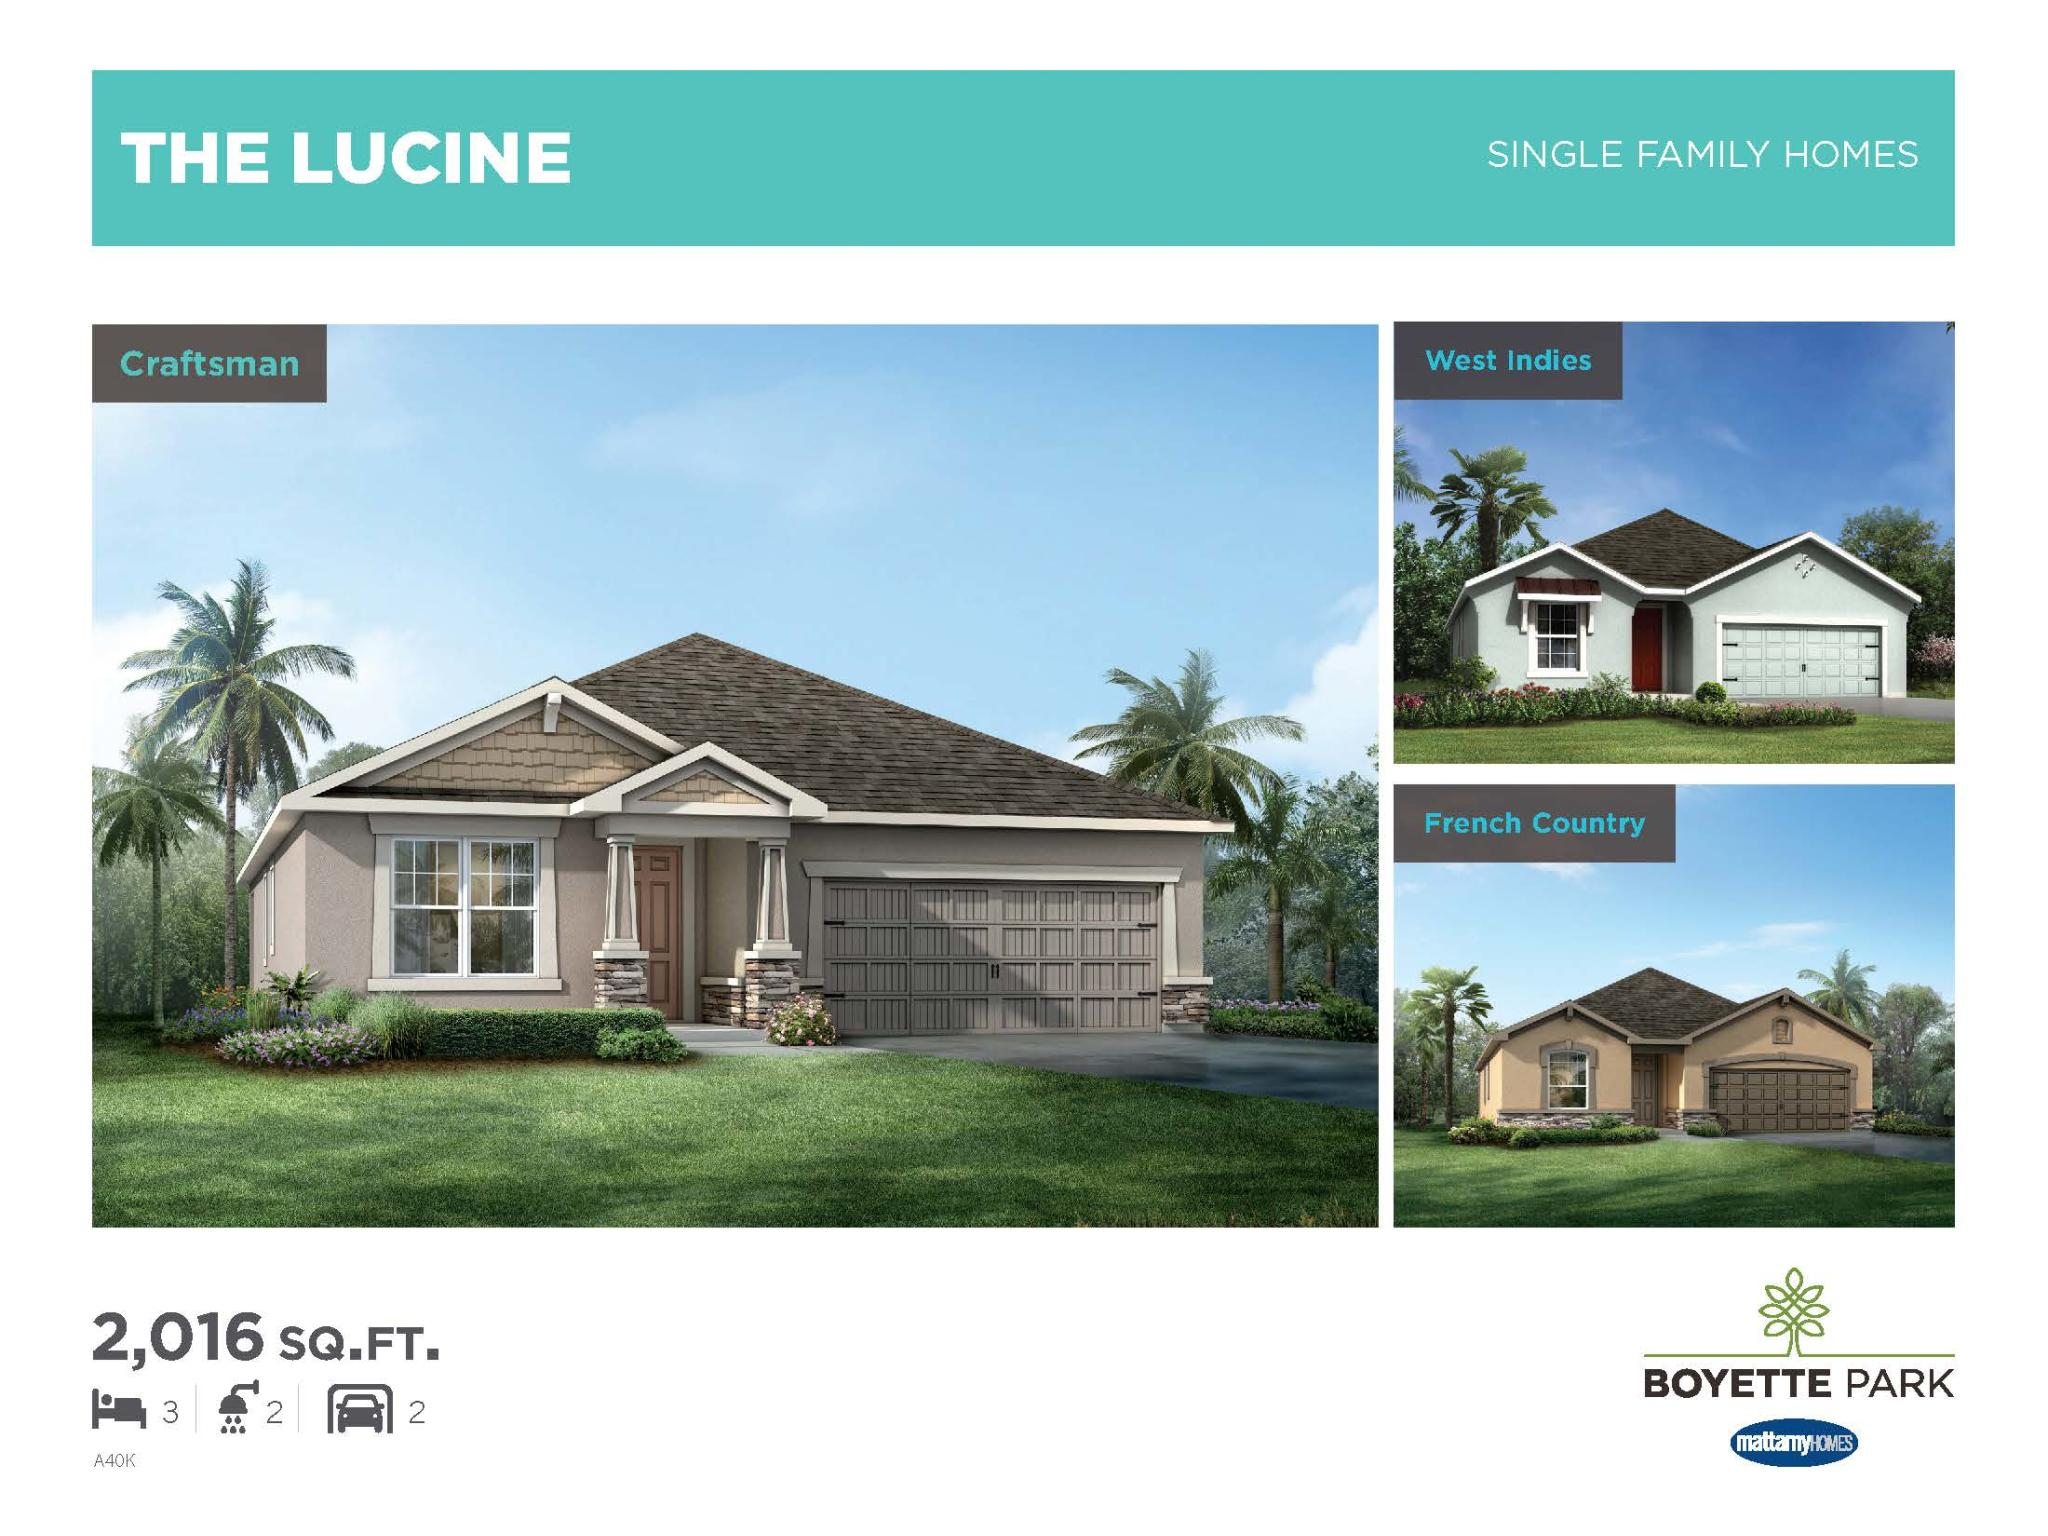 Lucine Single Family Home Plan Riverview Fl 33569 Trulia